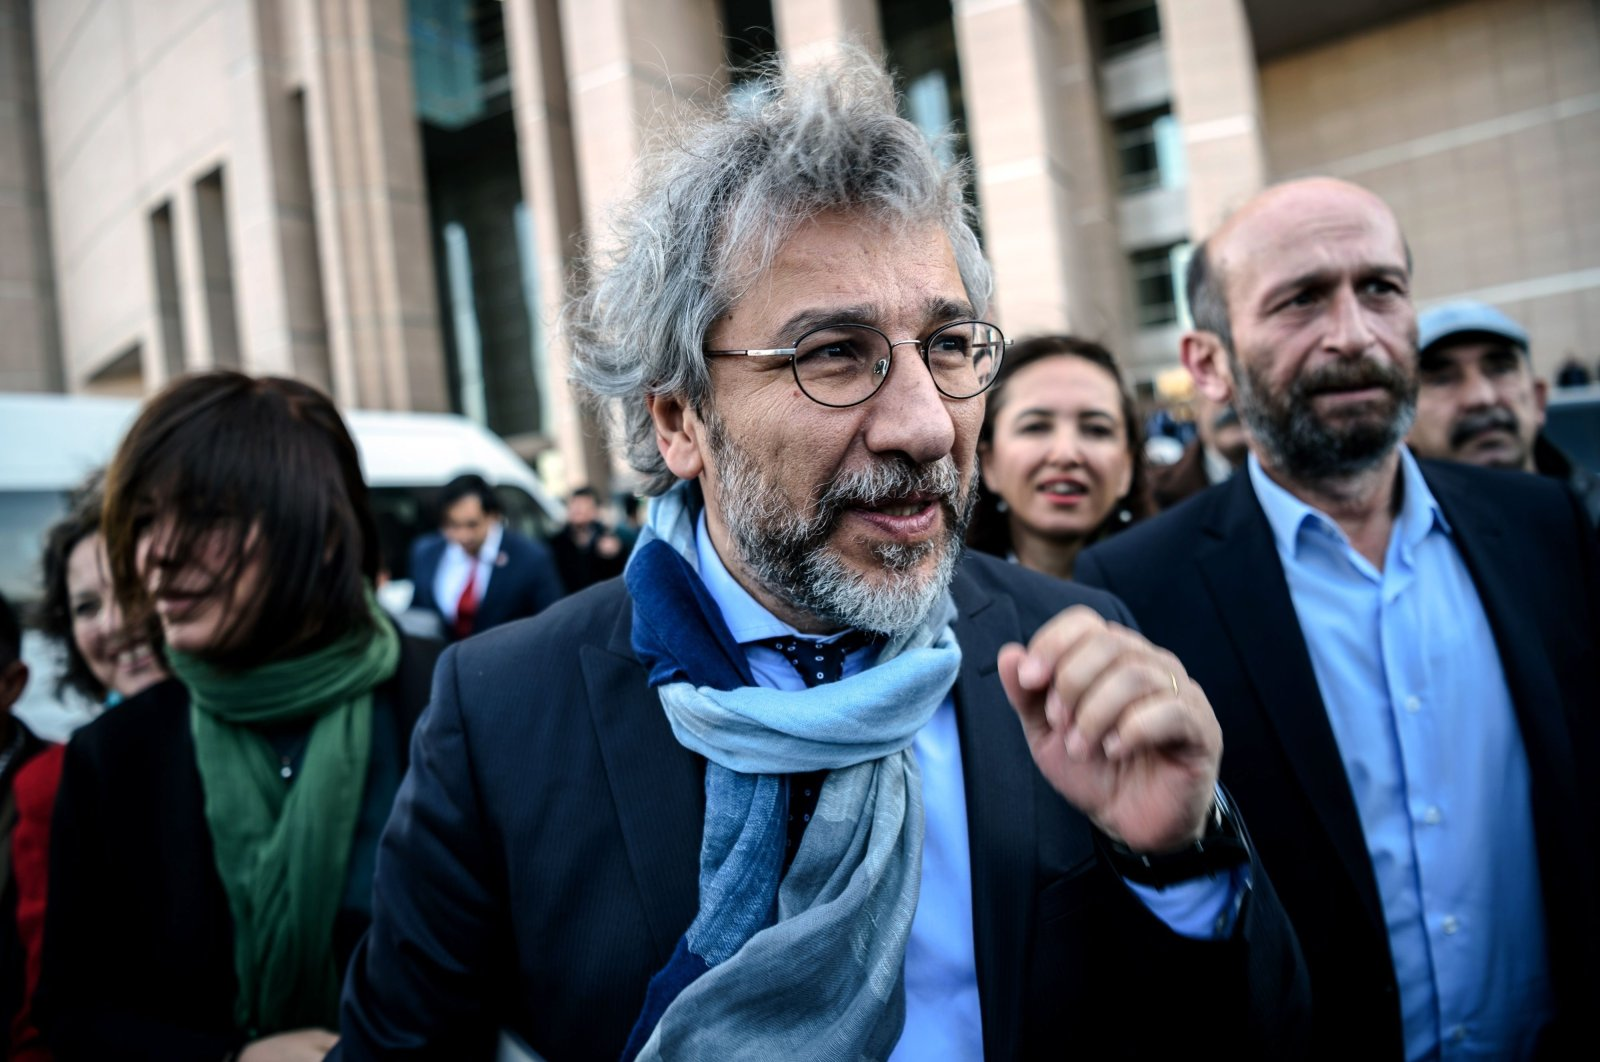 Can Dündar arrives at a courthouse for his trial, in Istanbul, Turkey, April 1, 2016. (AFP PHOTO)